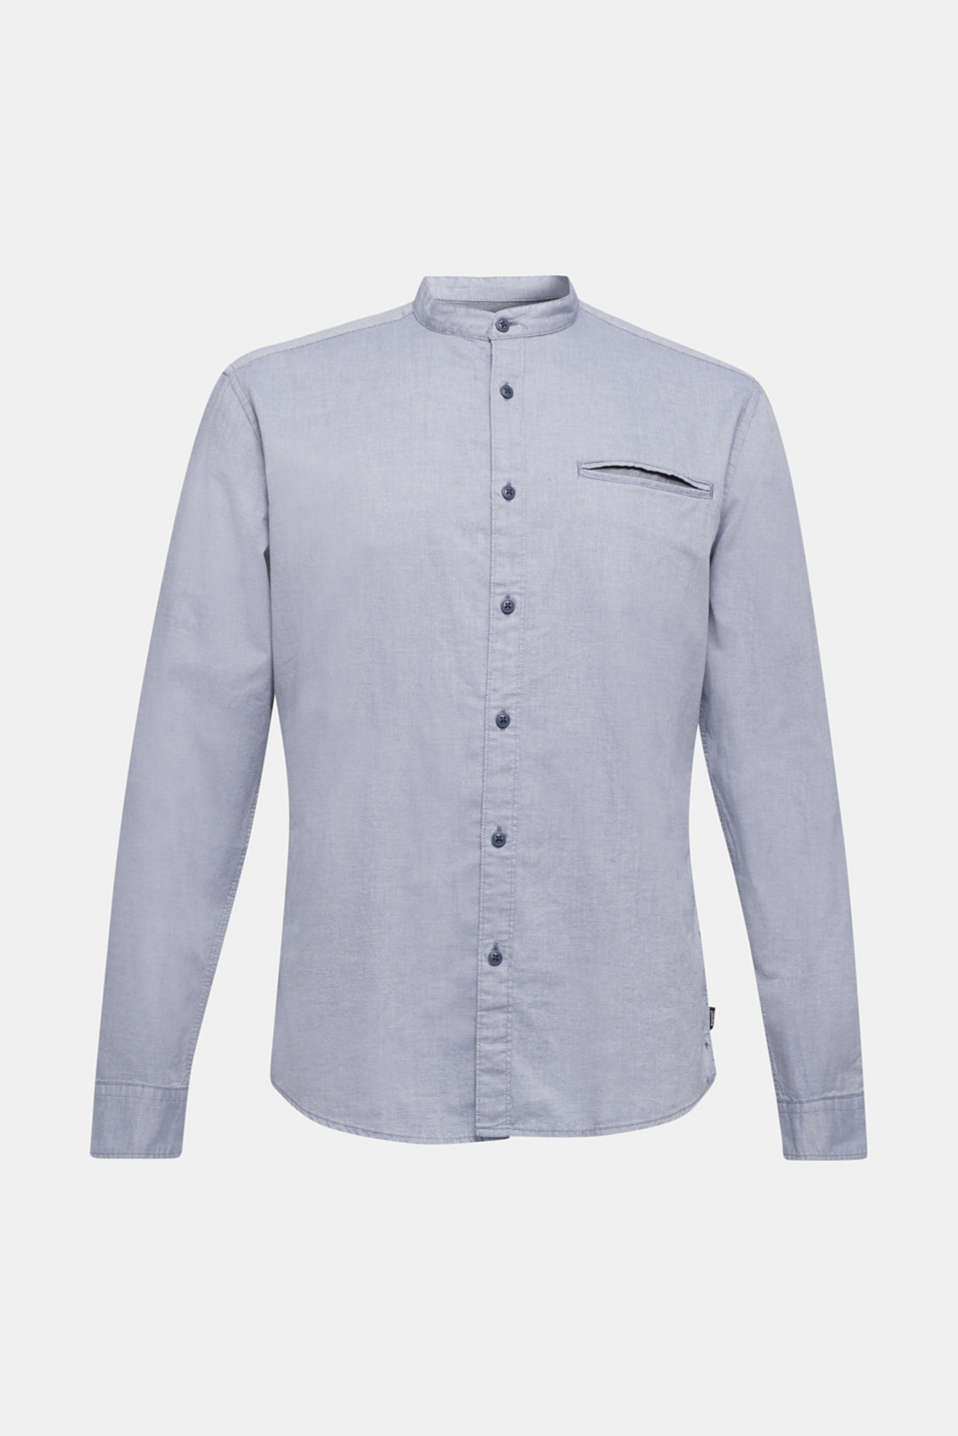 Shirt with band collar, 100% cotton, GREY BLUE 5, detail image number 7